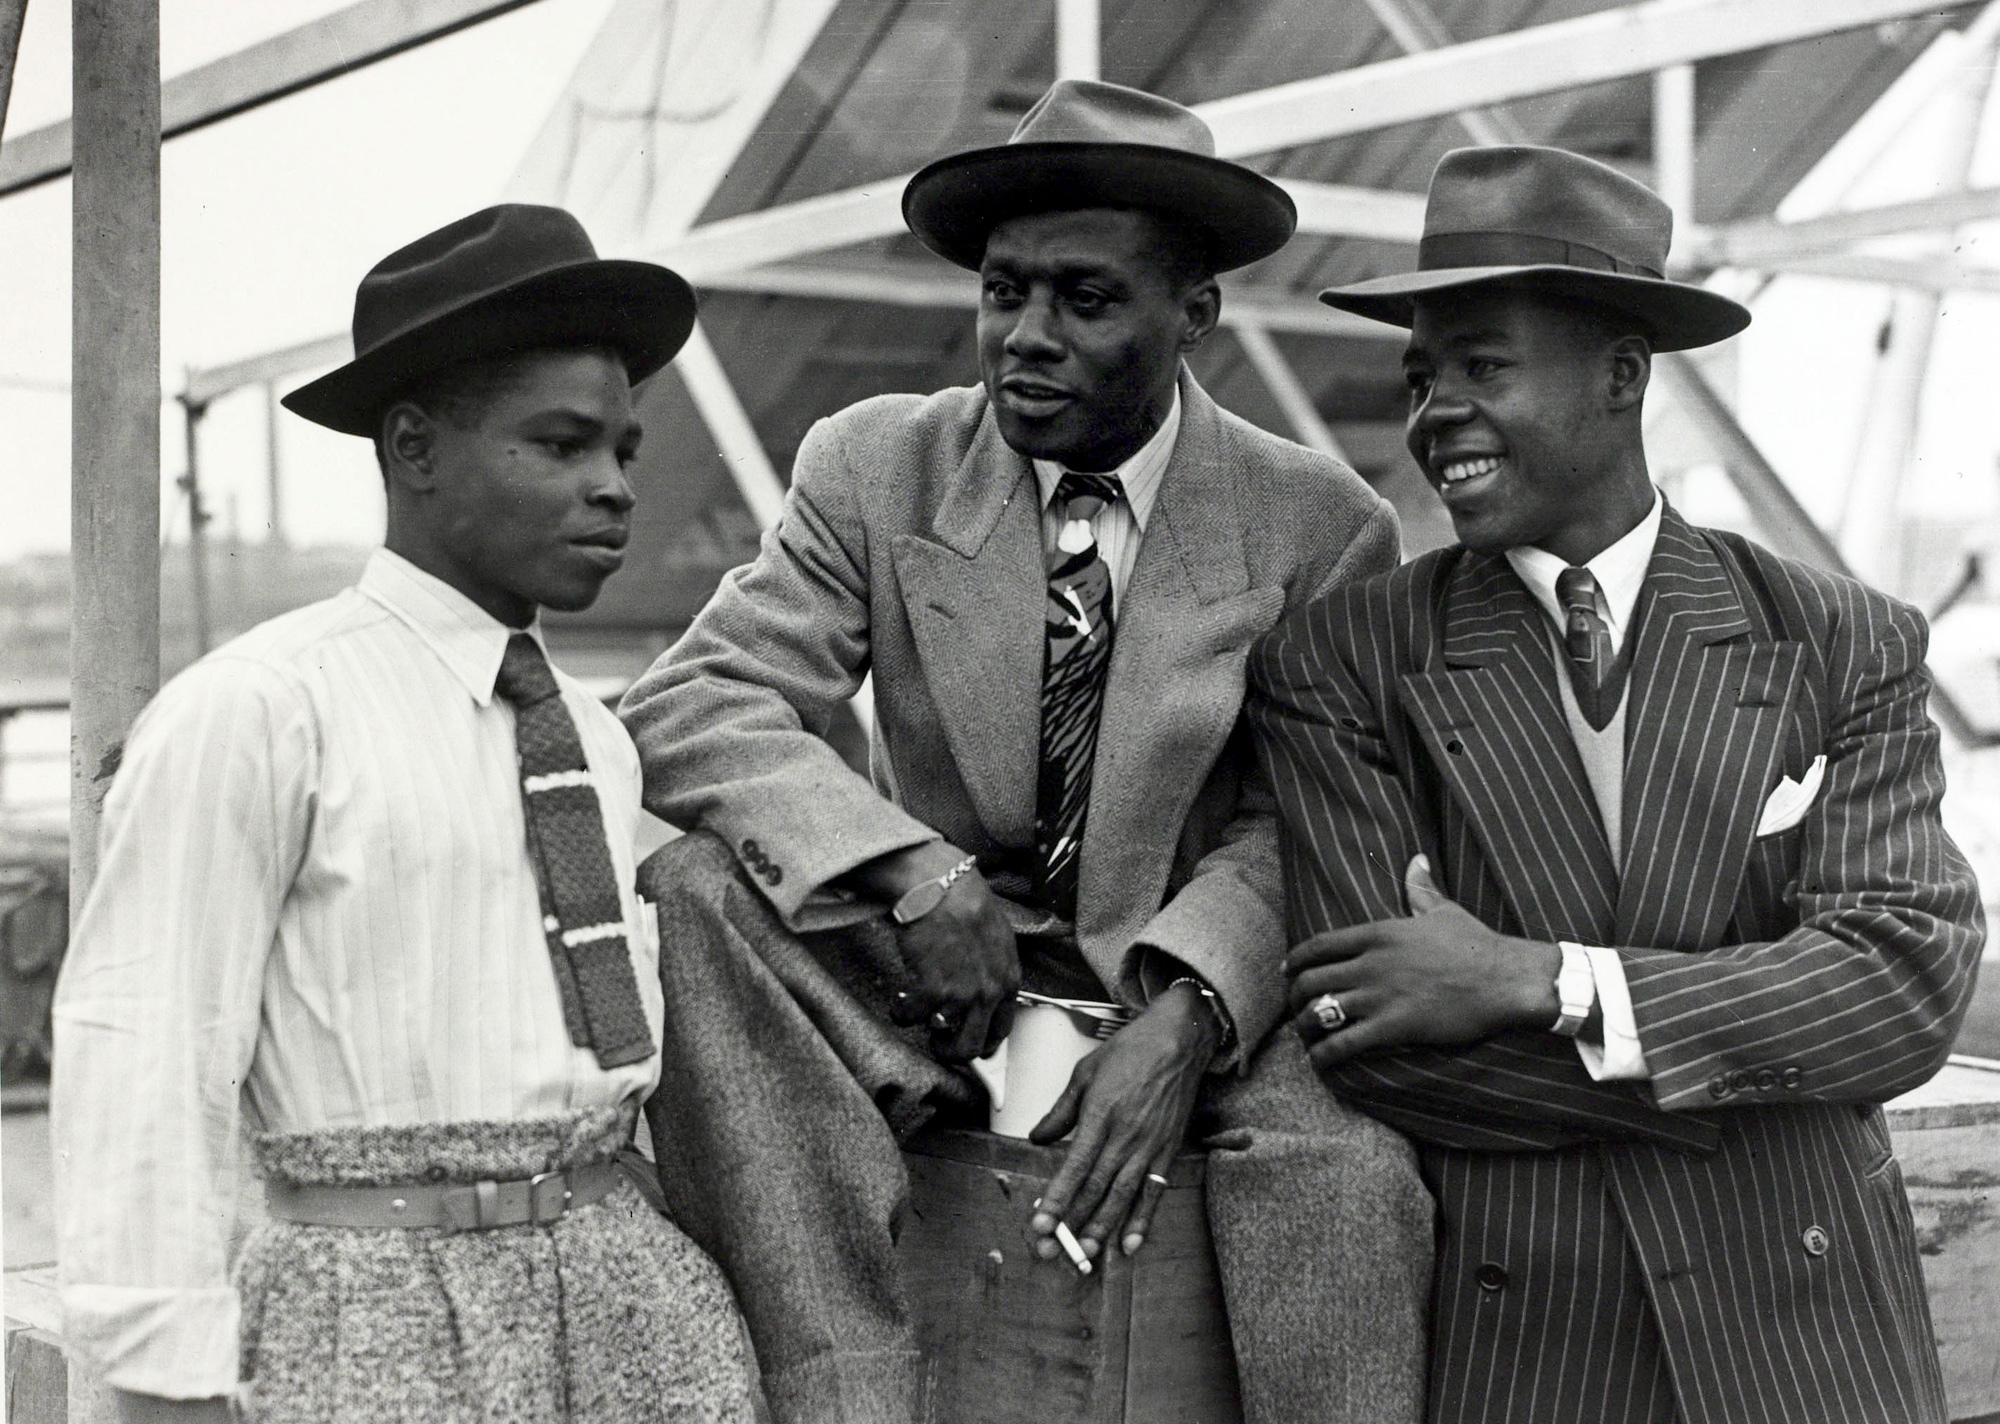 Black and white photograph of three men at Tilbury Docks, June 1948